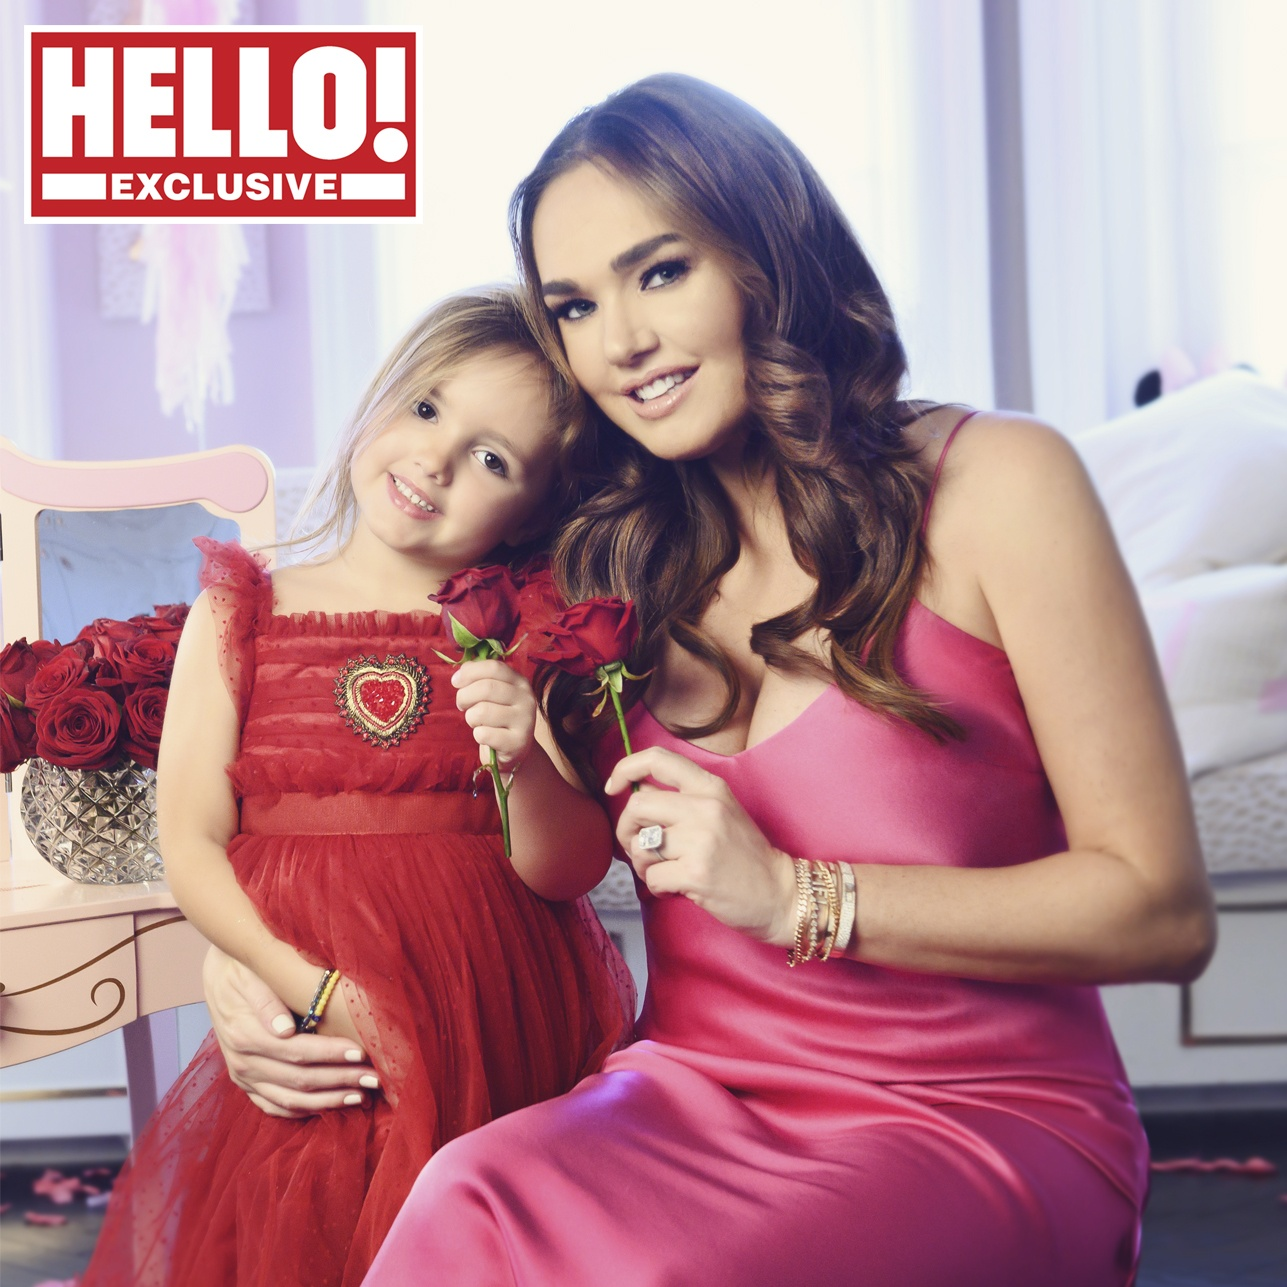 Tamara Ecclestone with daughter Sophia